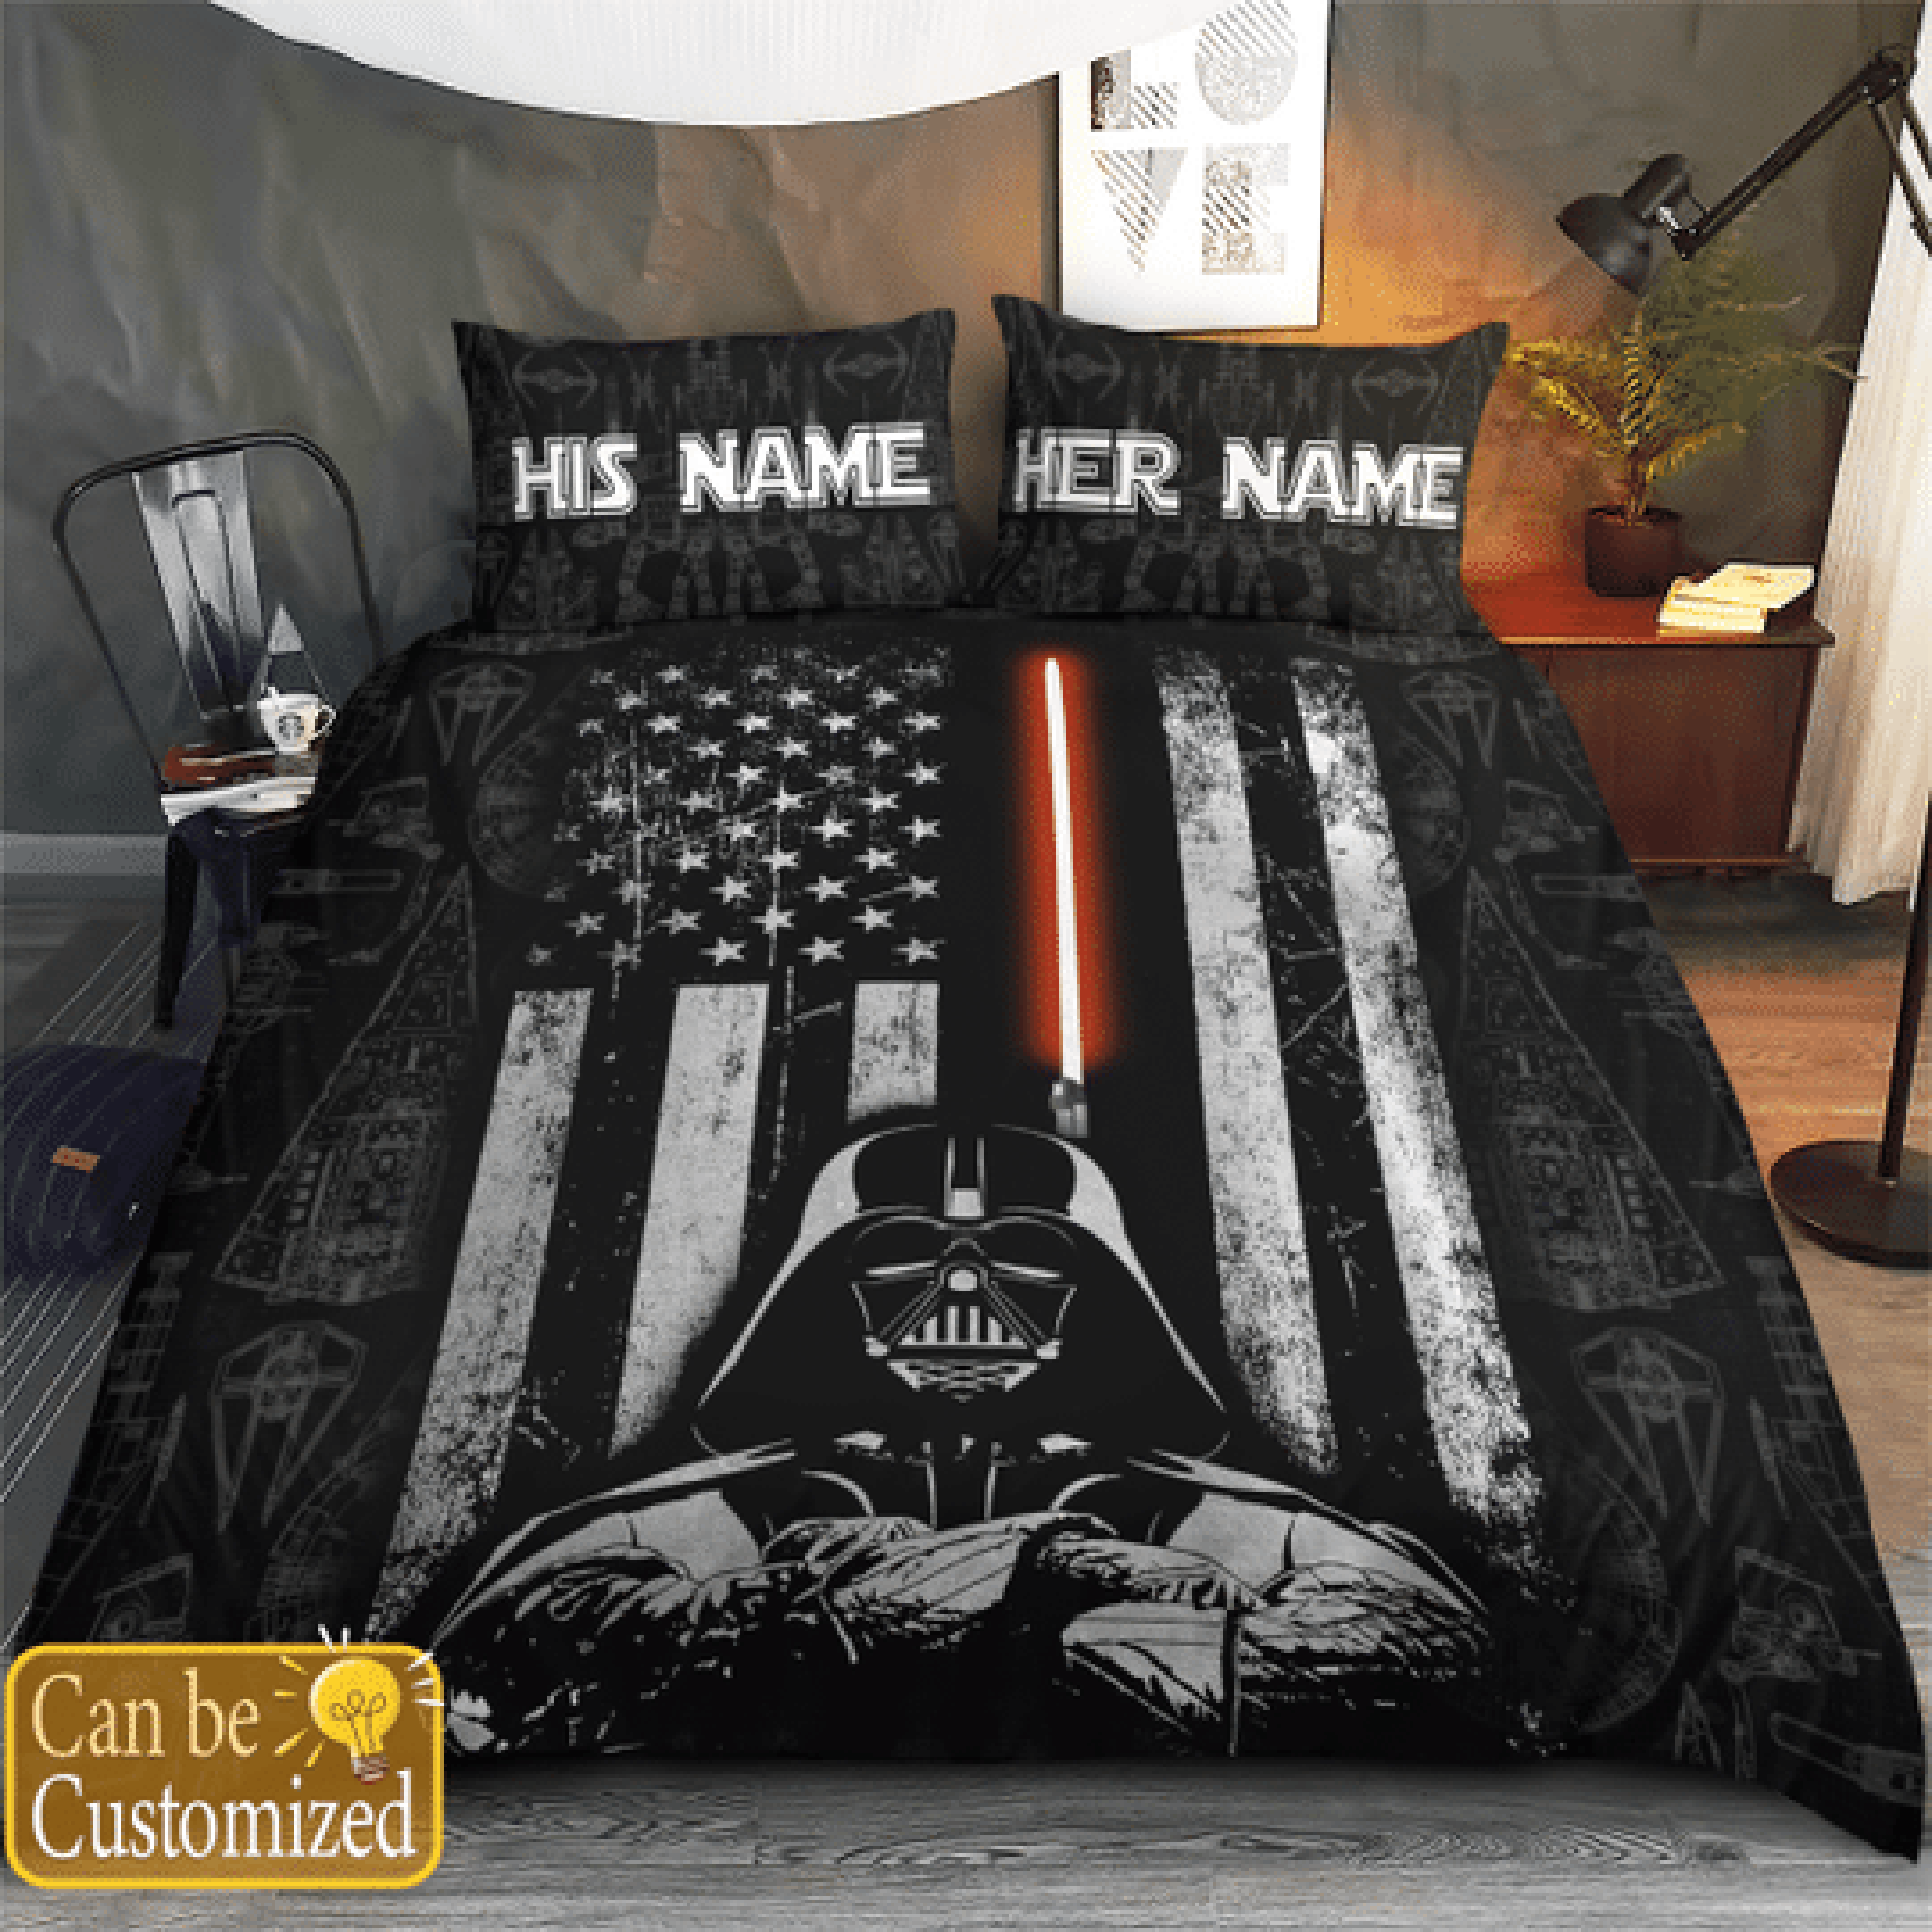 Customize Name Soldier 3D All Over Printed Bedding Set1